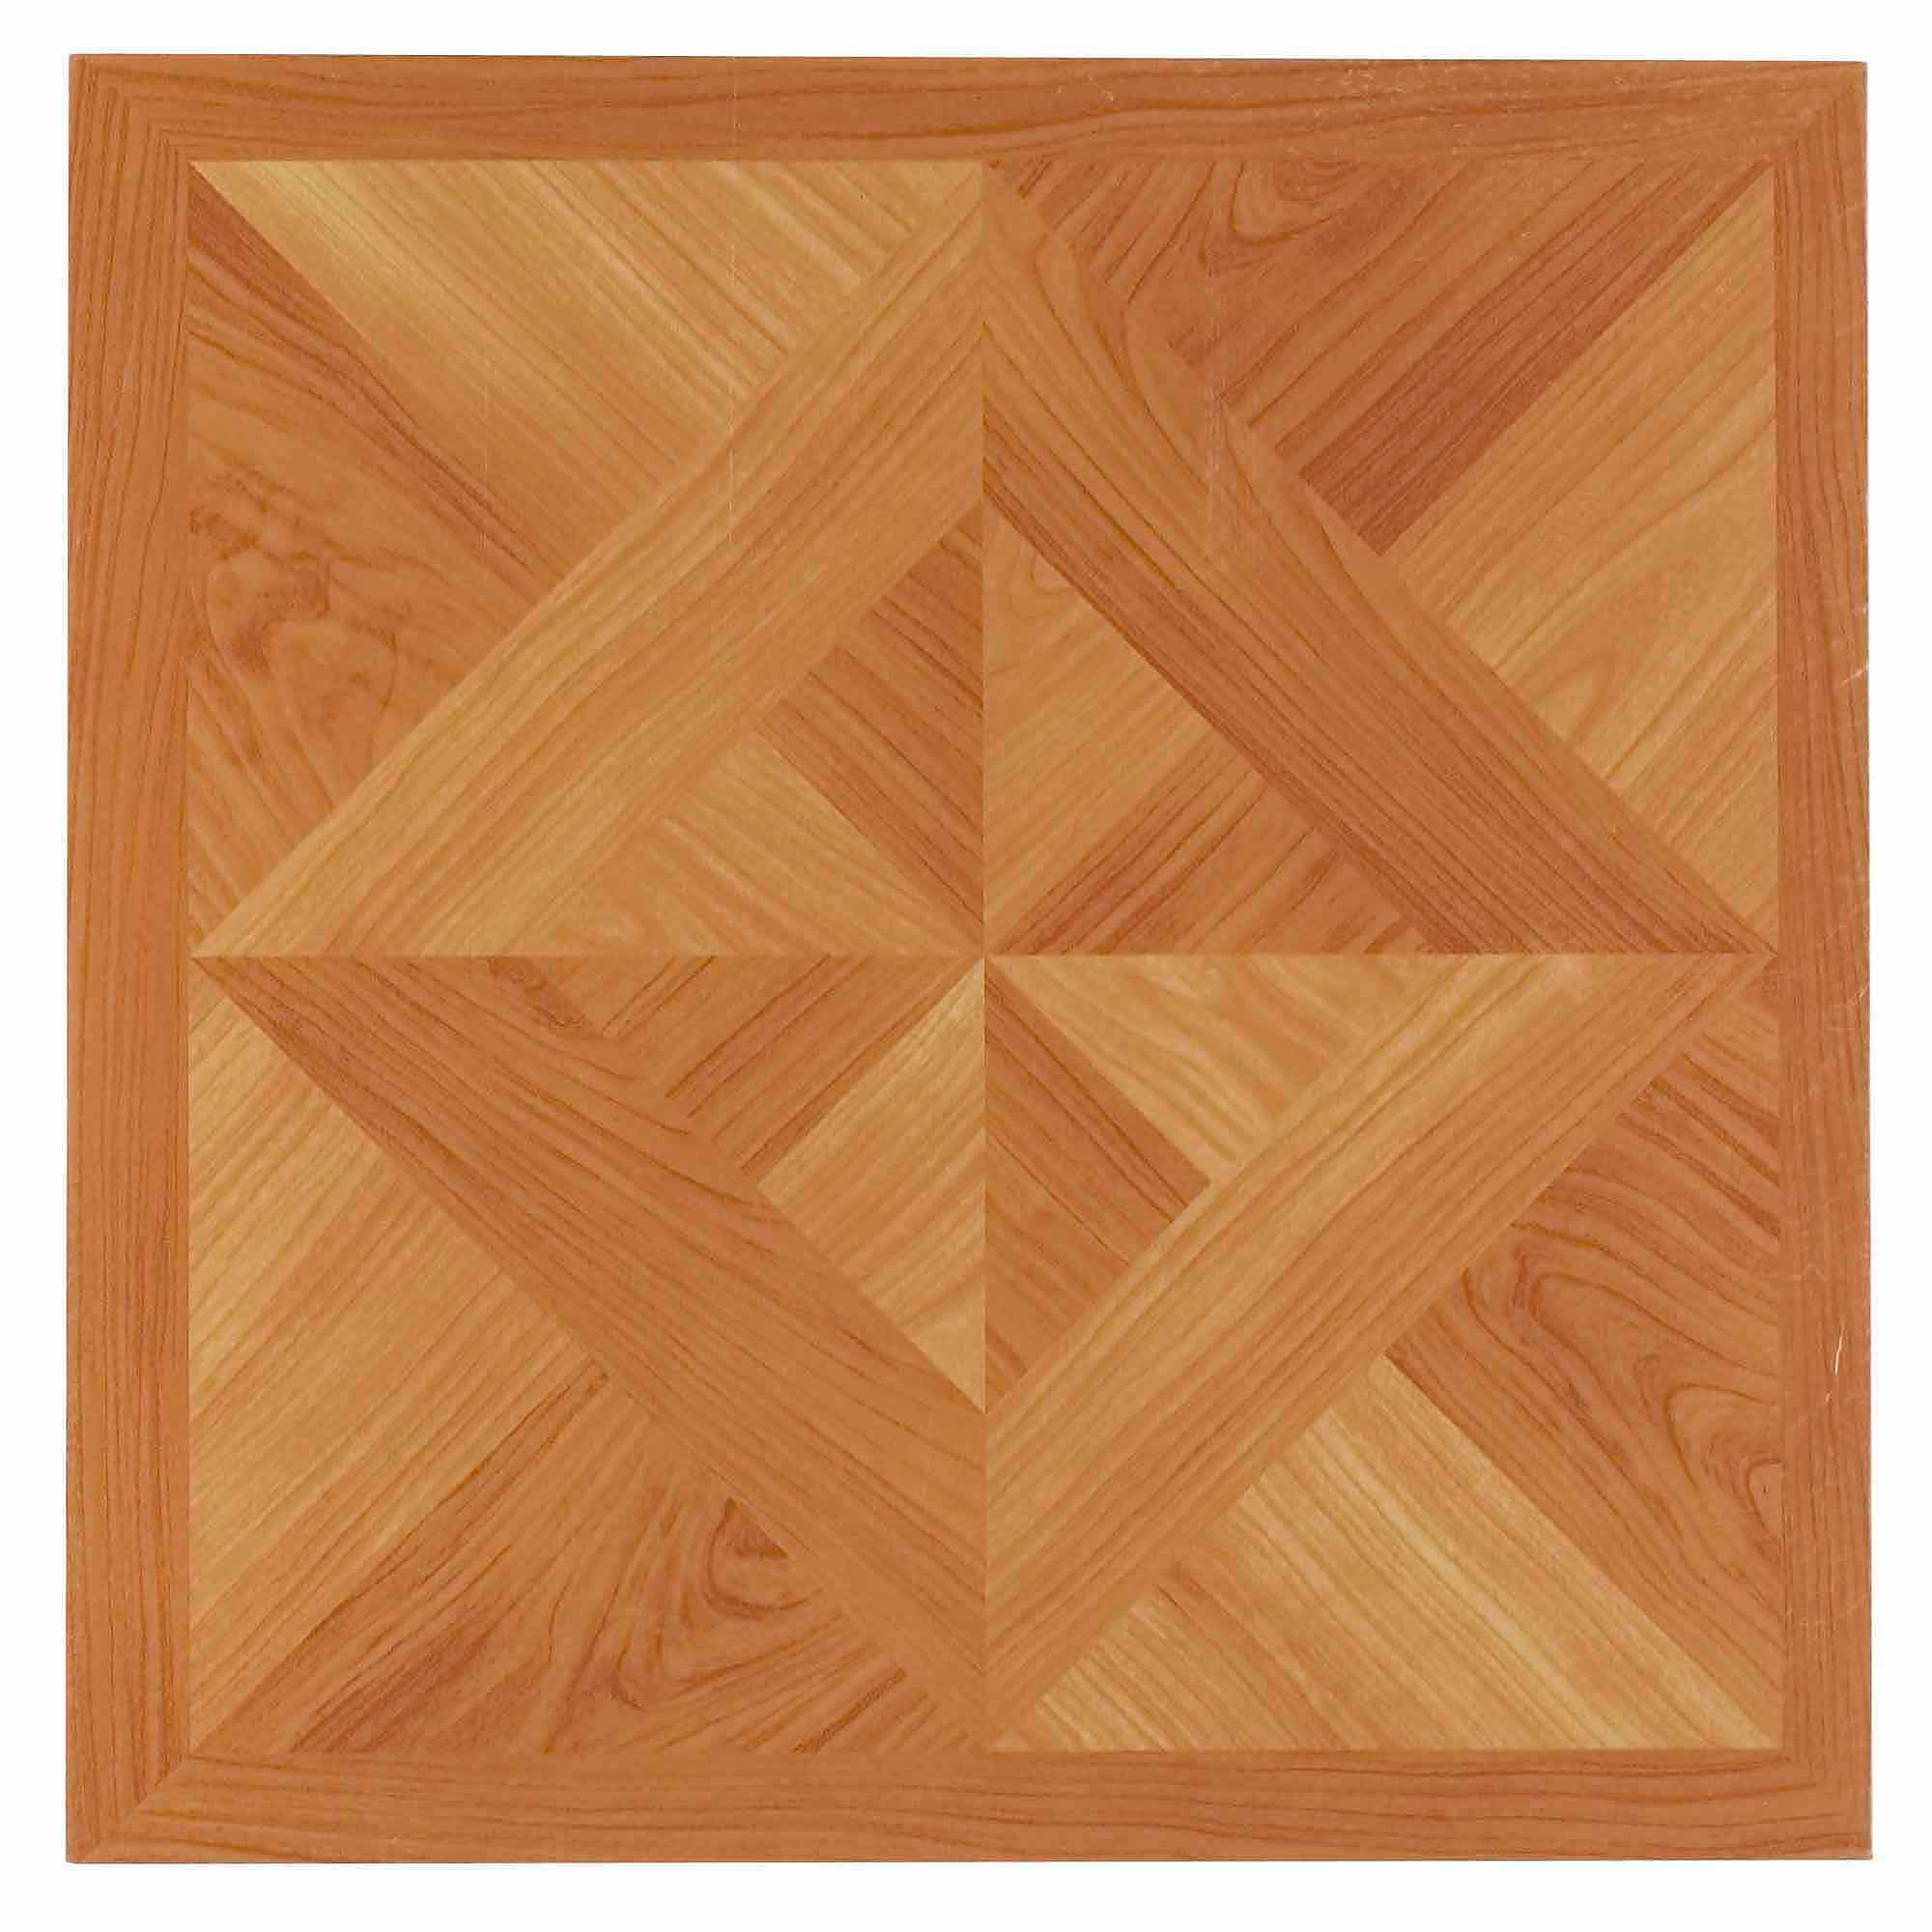 NEXUS Classic Light Oak Diamond Parquet 12x12 Self Adhesive Vinyl Floor Tile - 20 Tiles/20 Sq.Ft.